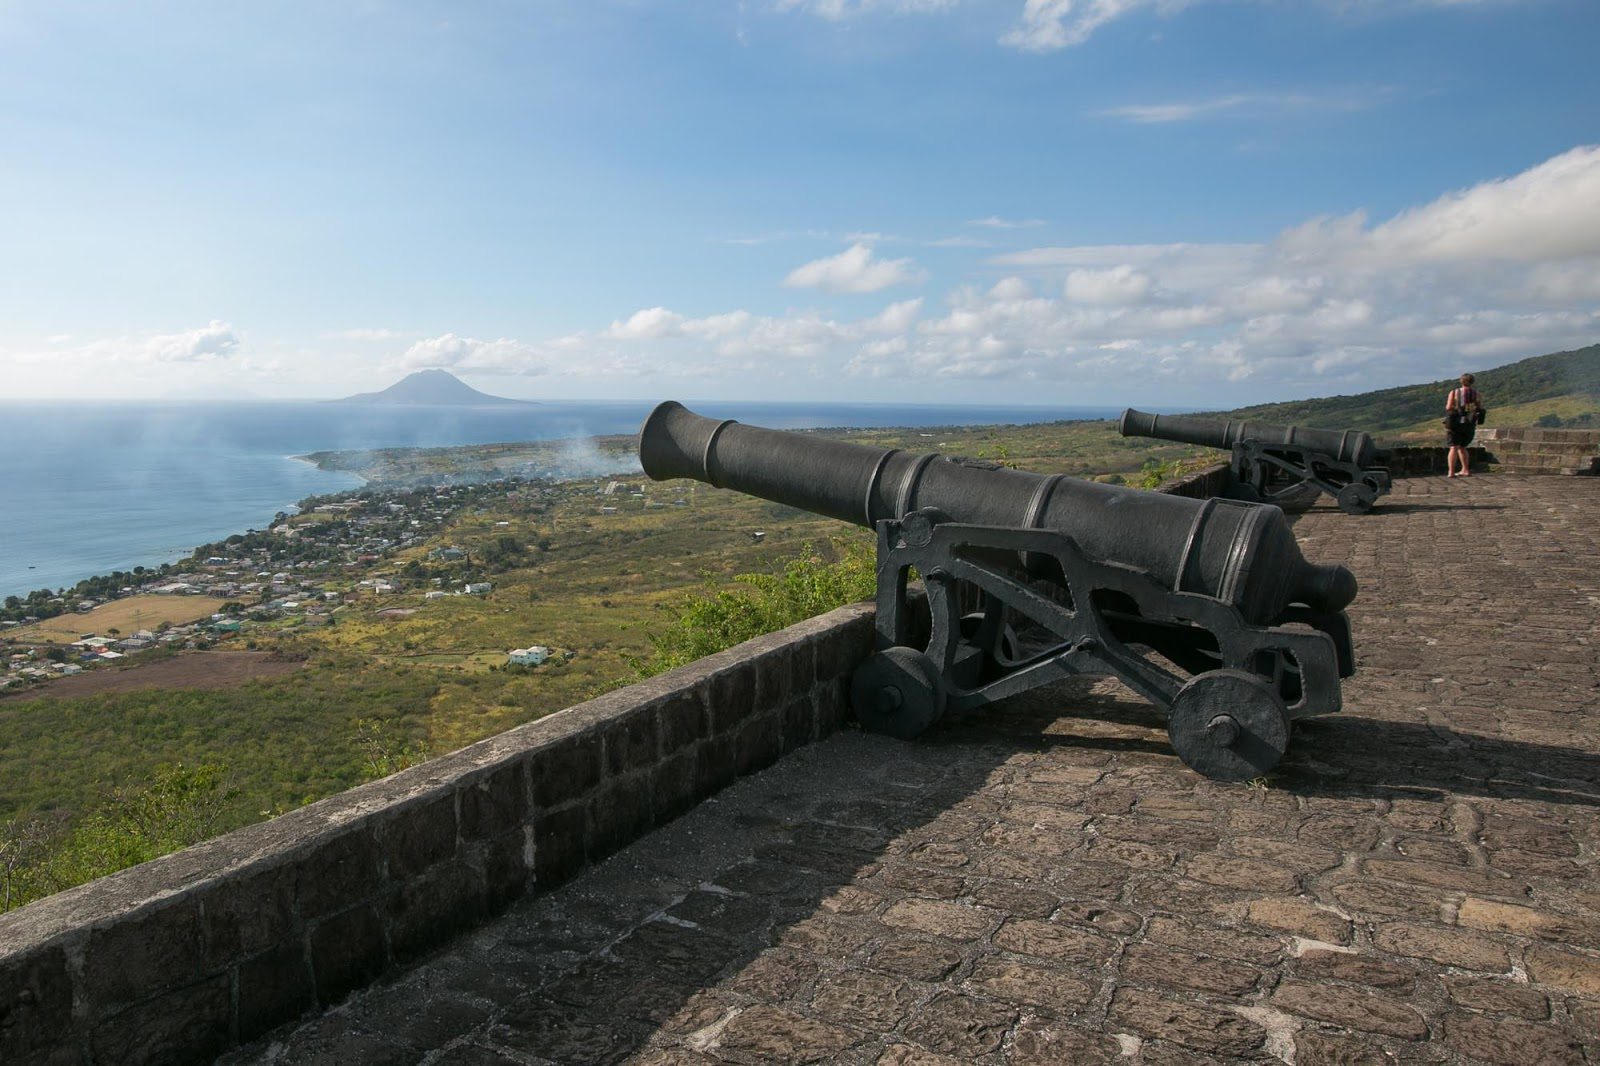 Cannons at Brimstone Hill Fortress, St. Kitts